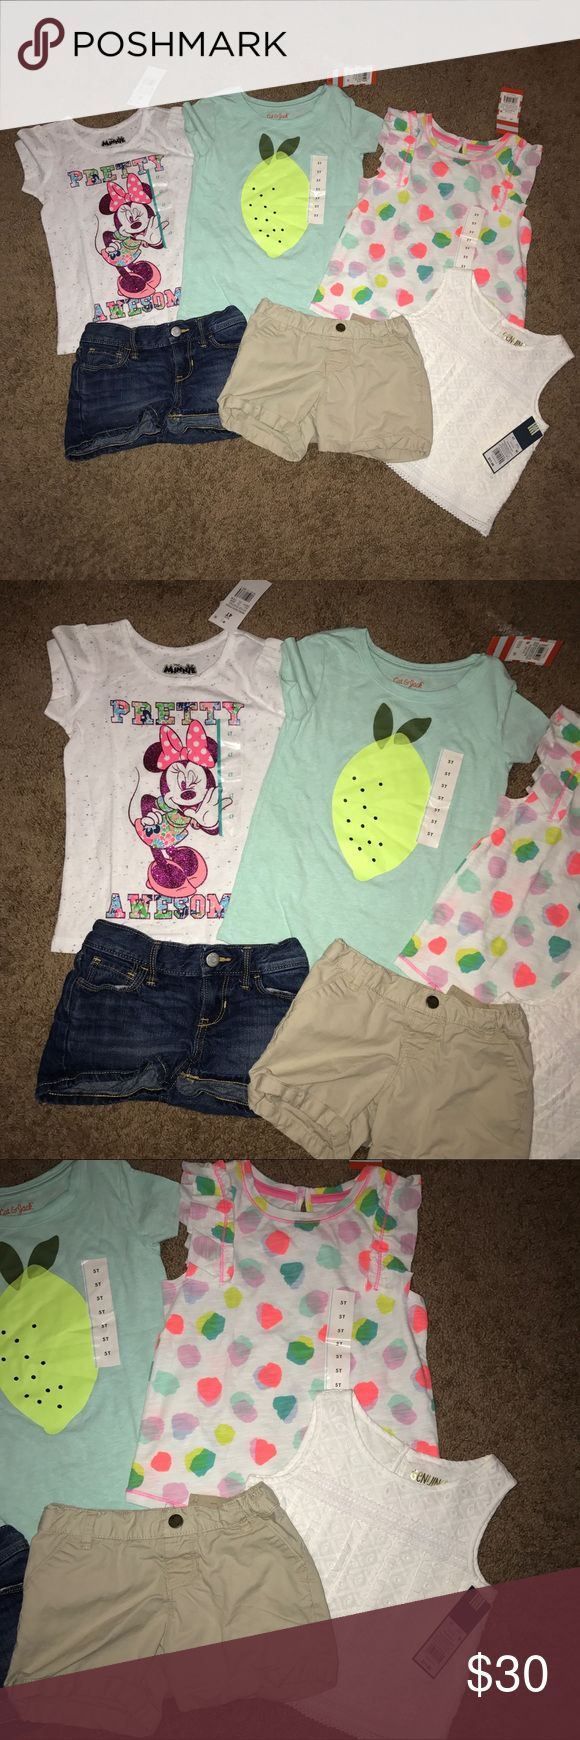 16 piece bundle of girls clothes old navy size 4 5 Includes 16 pieces and 8 are new with tags. Brands include old navy, gap, Oshkosh, cat & jack, Gymboree, pep pig. Perfect for summer and early fall. Gymboree Matching Sets